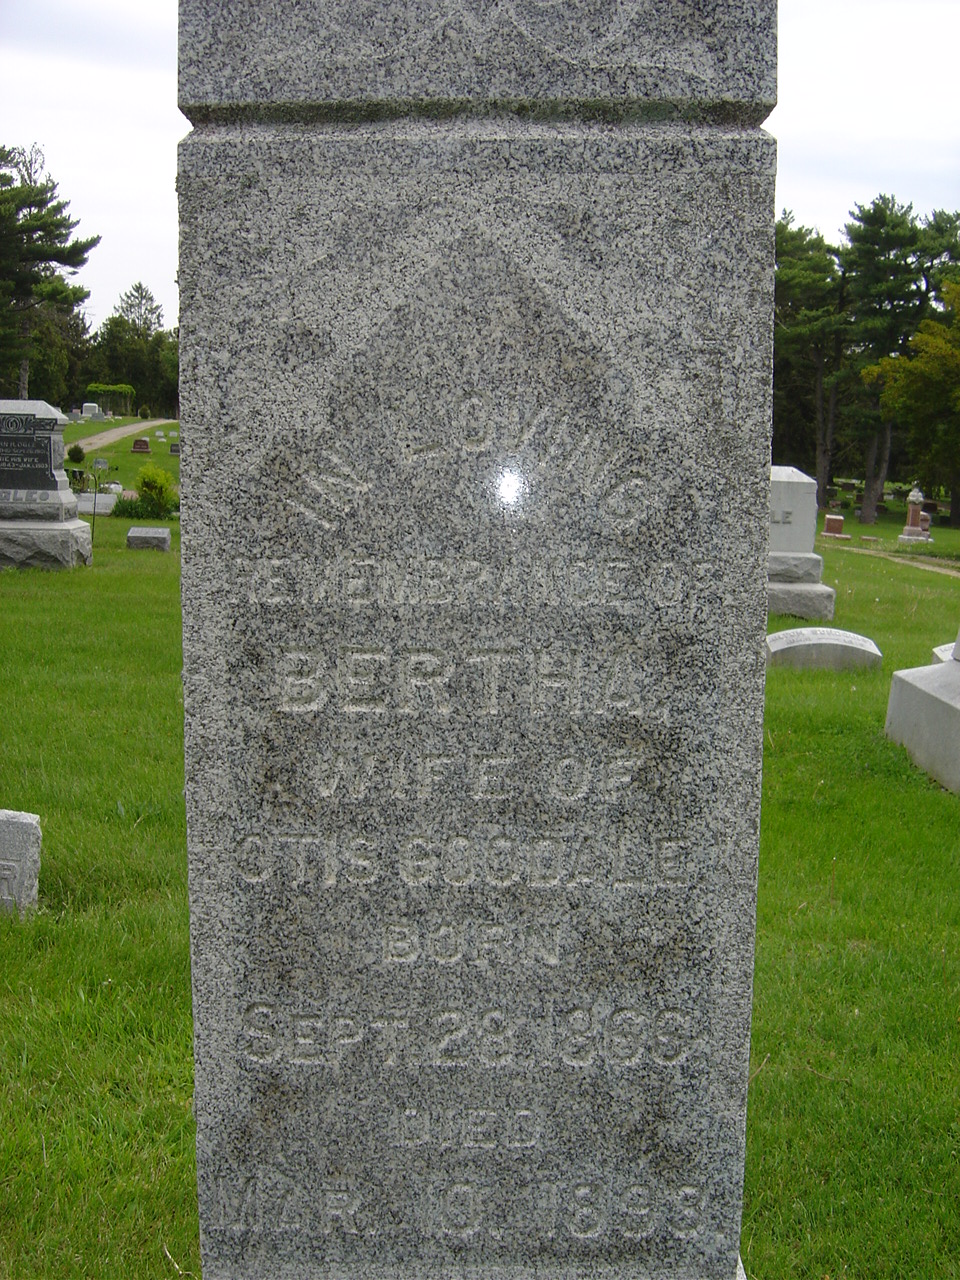 Bertha A <i>Parrish</i> Goodale